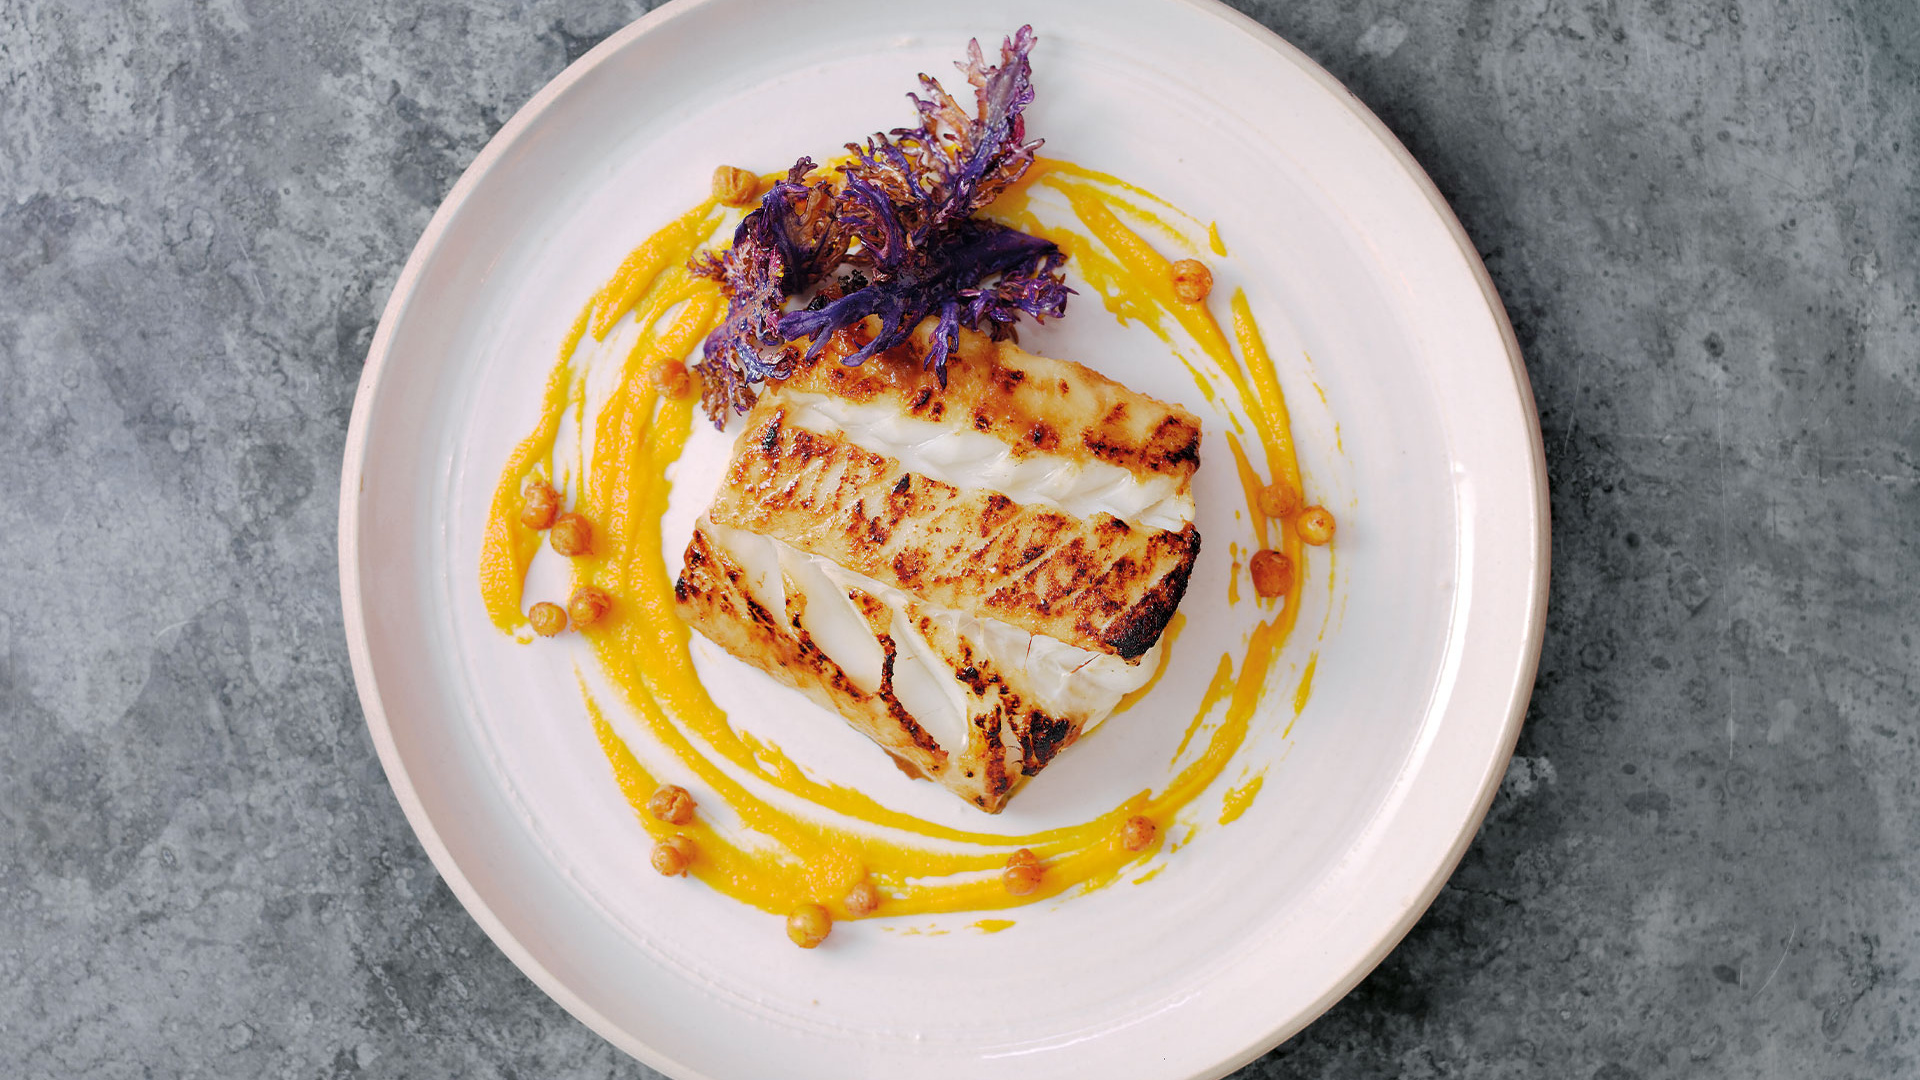 Michel Roux Jr's miso-glazed Skrei, carrot and ginger purée and crispy kale